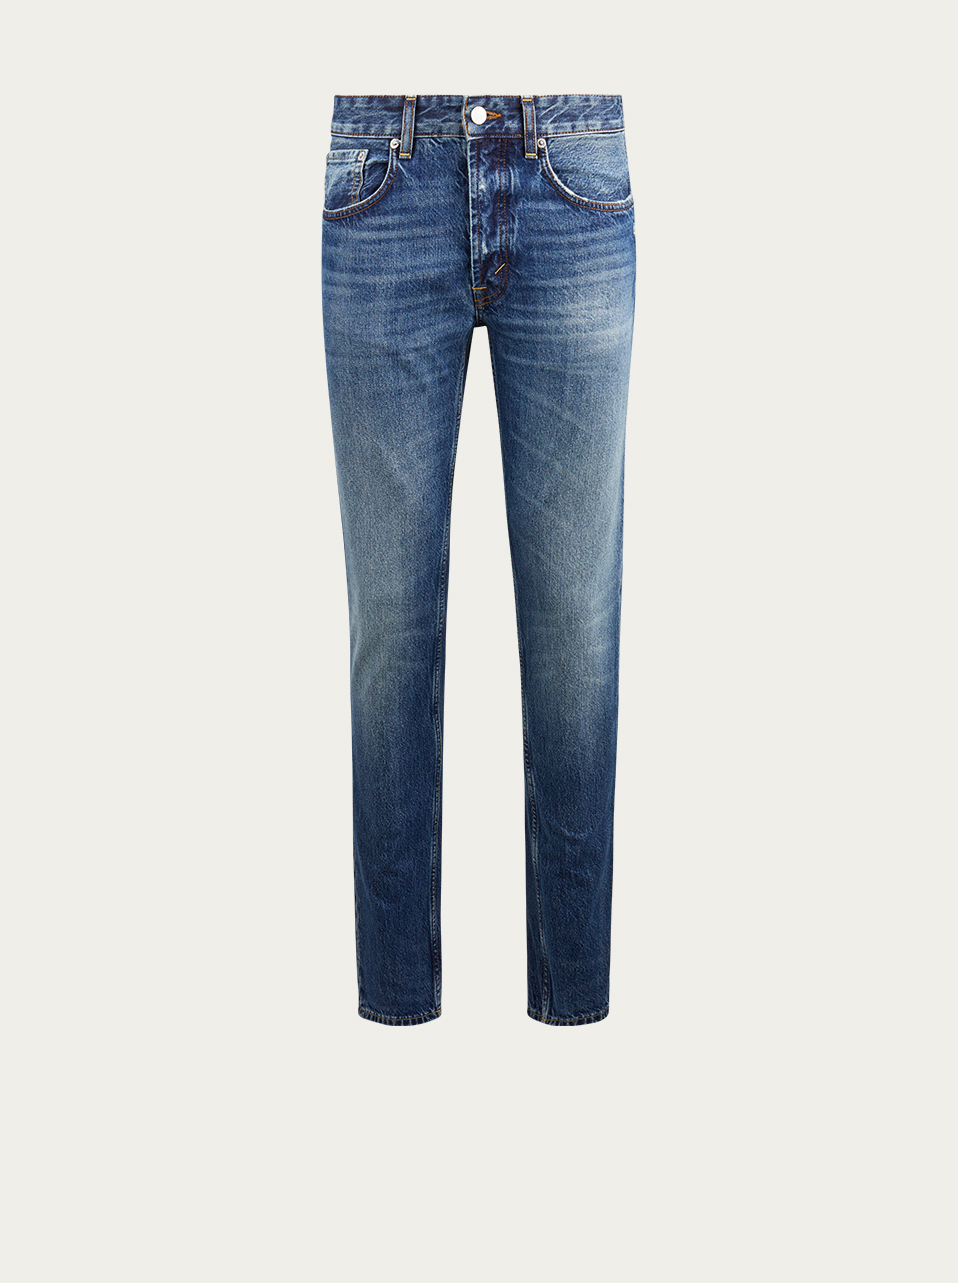 DEPARTMENT 5 Jeans in Blau